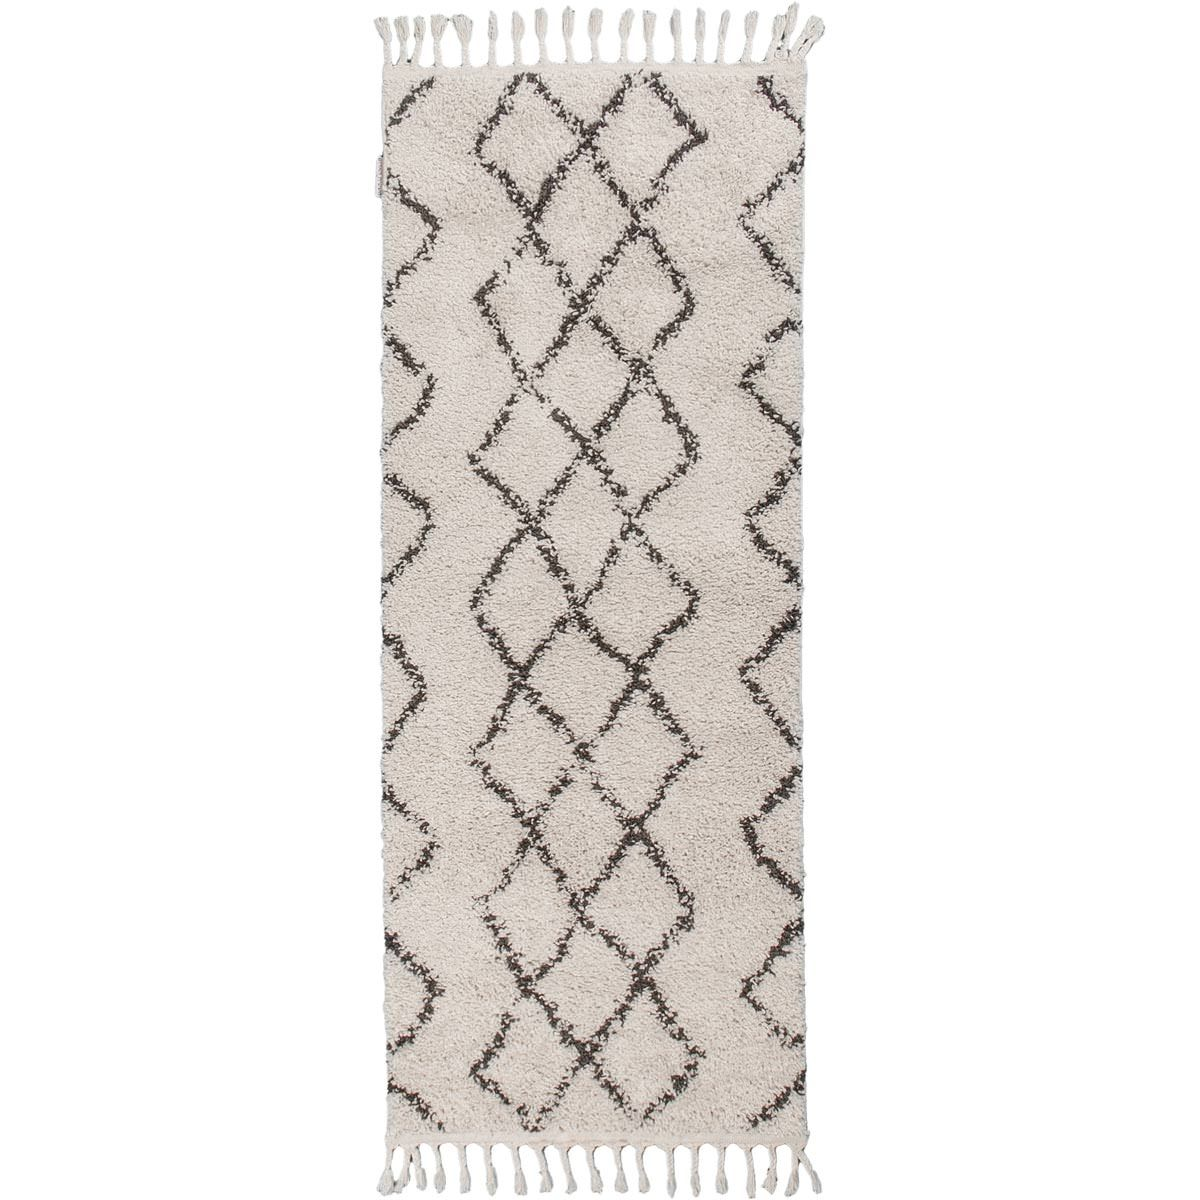 Shaggy Marrakech Rug 03 Cream/Black Runner 1